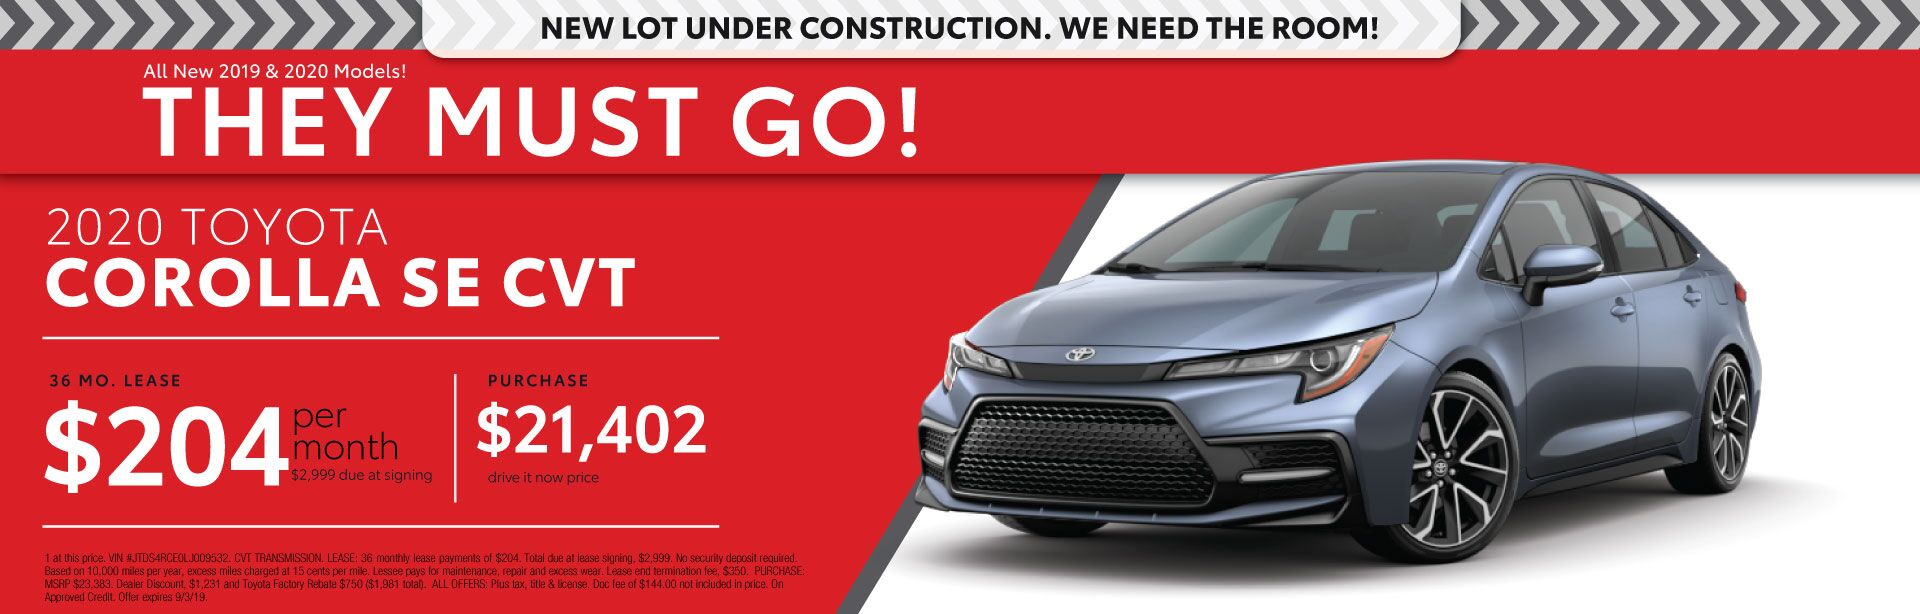 2020 Toyota Corolla SE - Lease for $204 per month for 36 months with $2,999 due signing - Purchase price $21,199